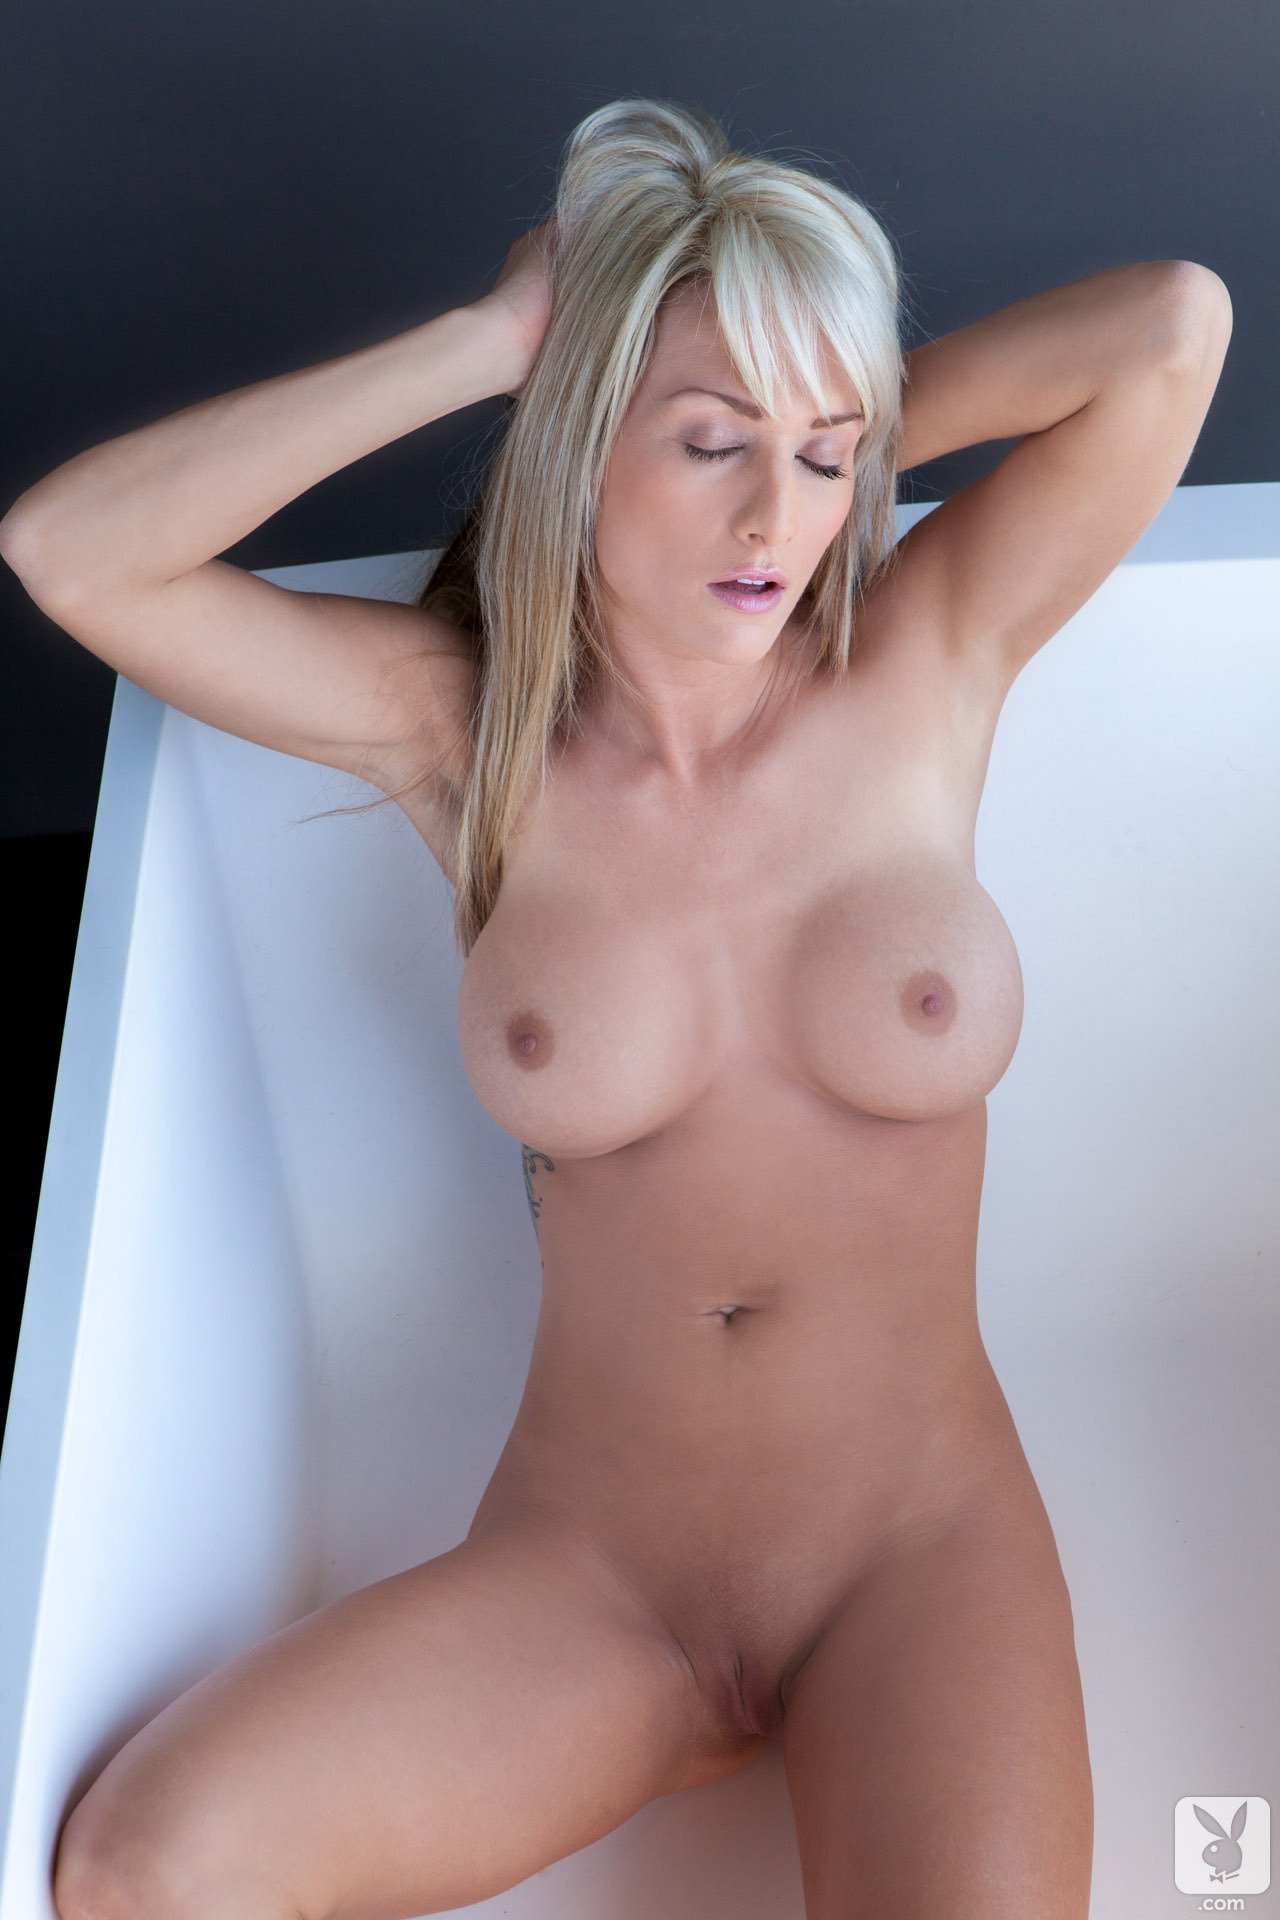 jessie-ann-blonde-boobs-bathtube-naked-playboy-18